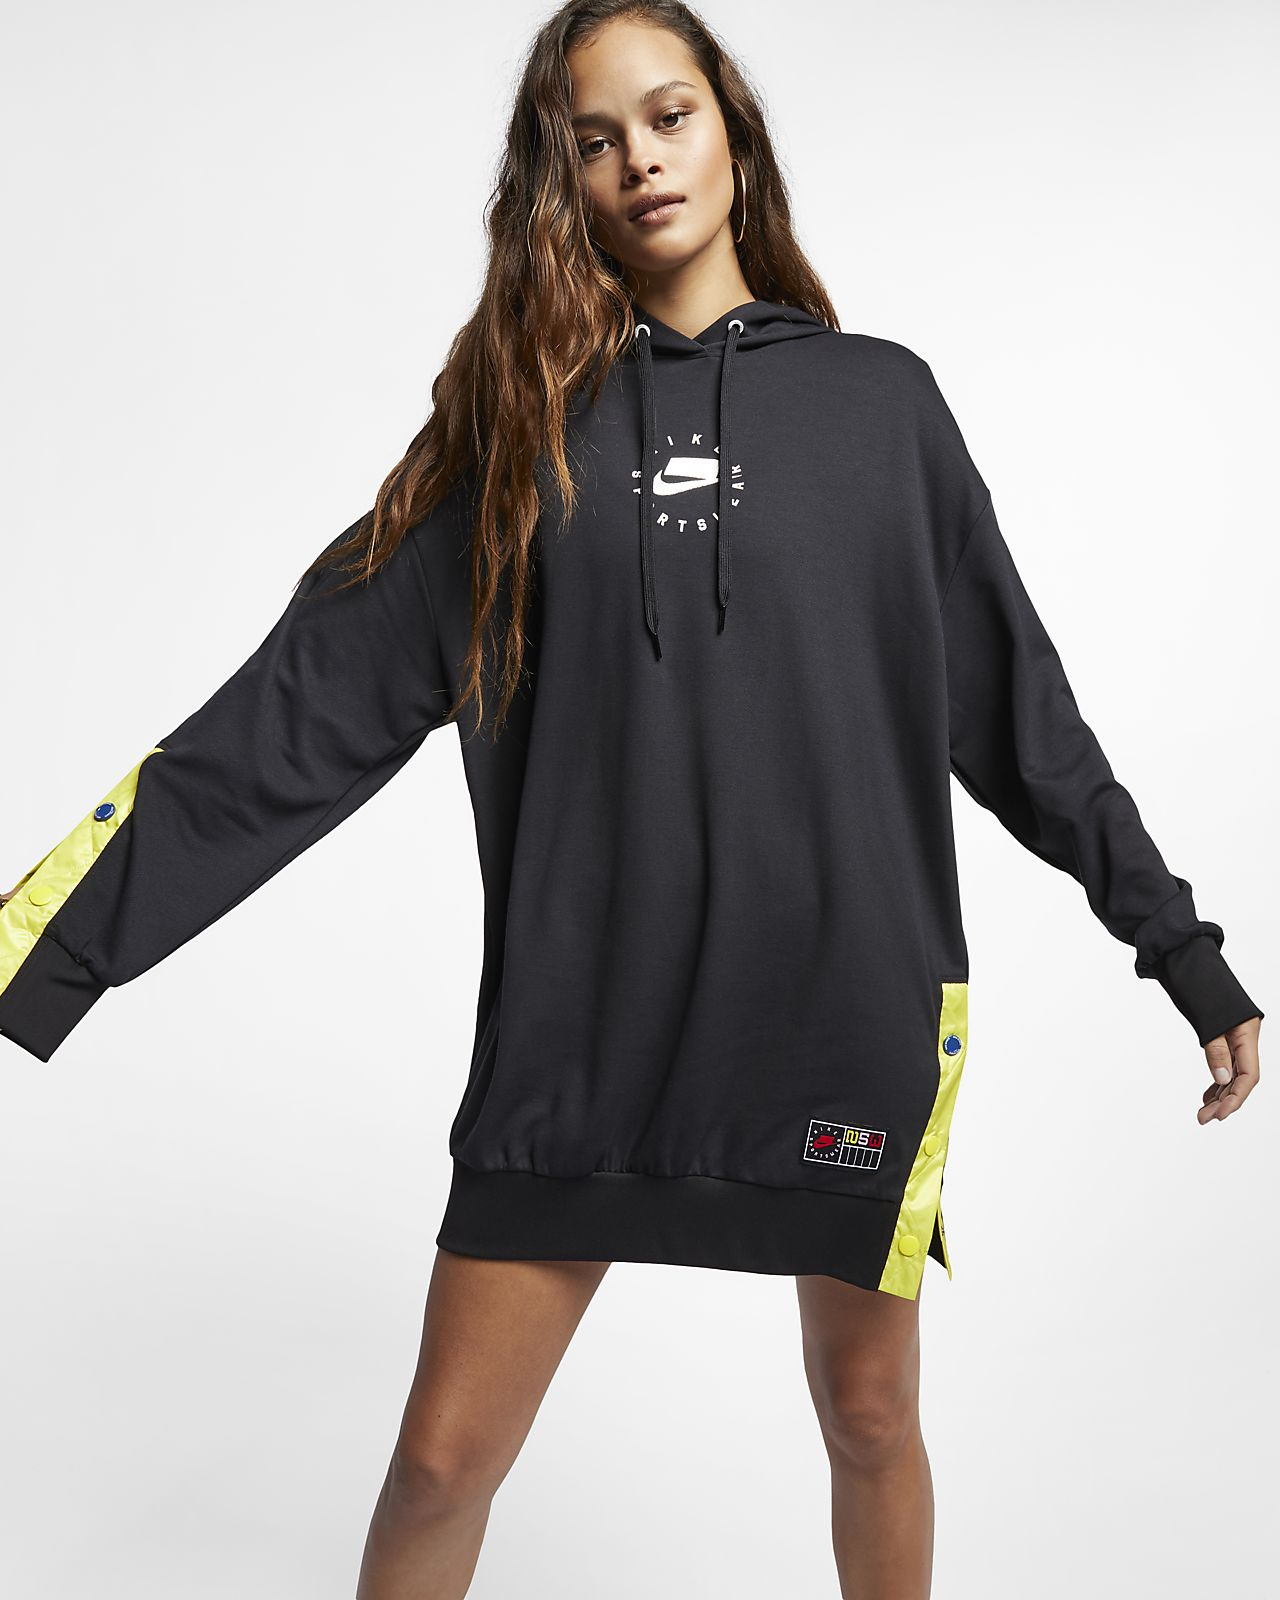 Nike Sportswear NSW Women's Hoodie Dress